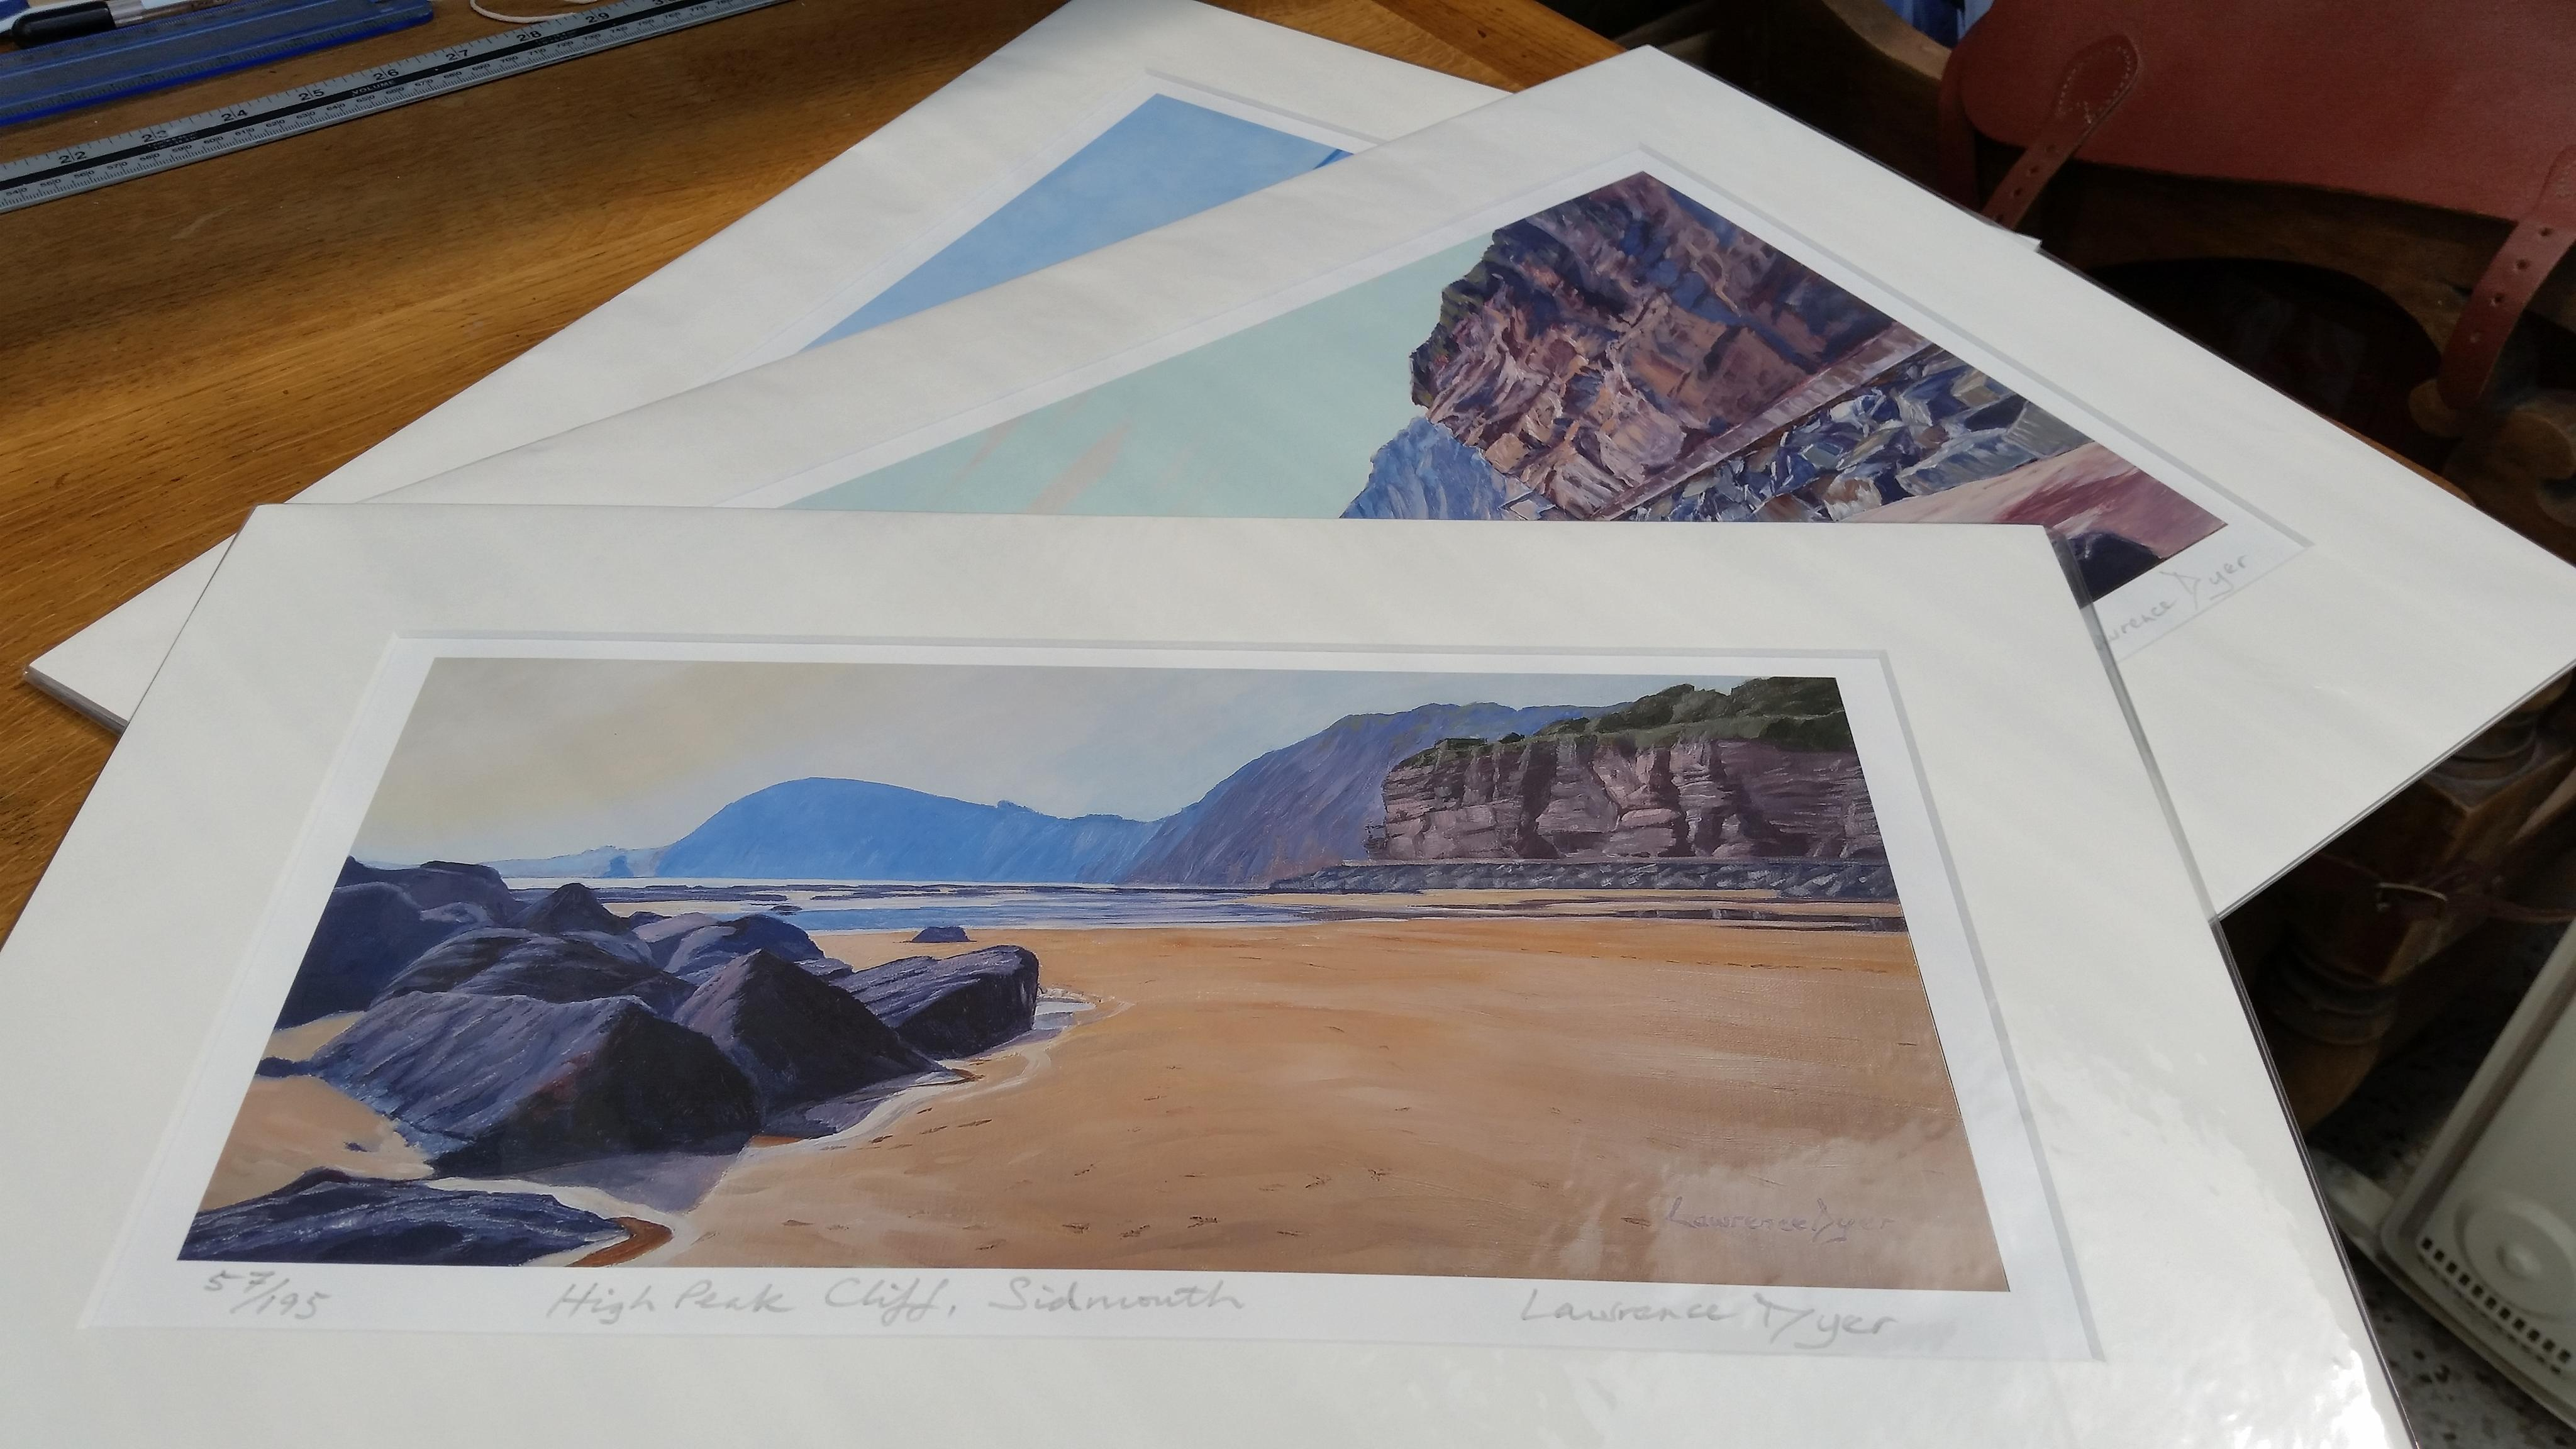 Prints of Sidmouth